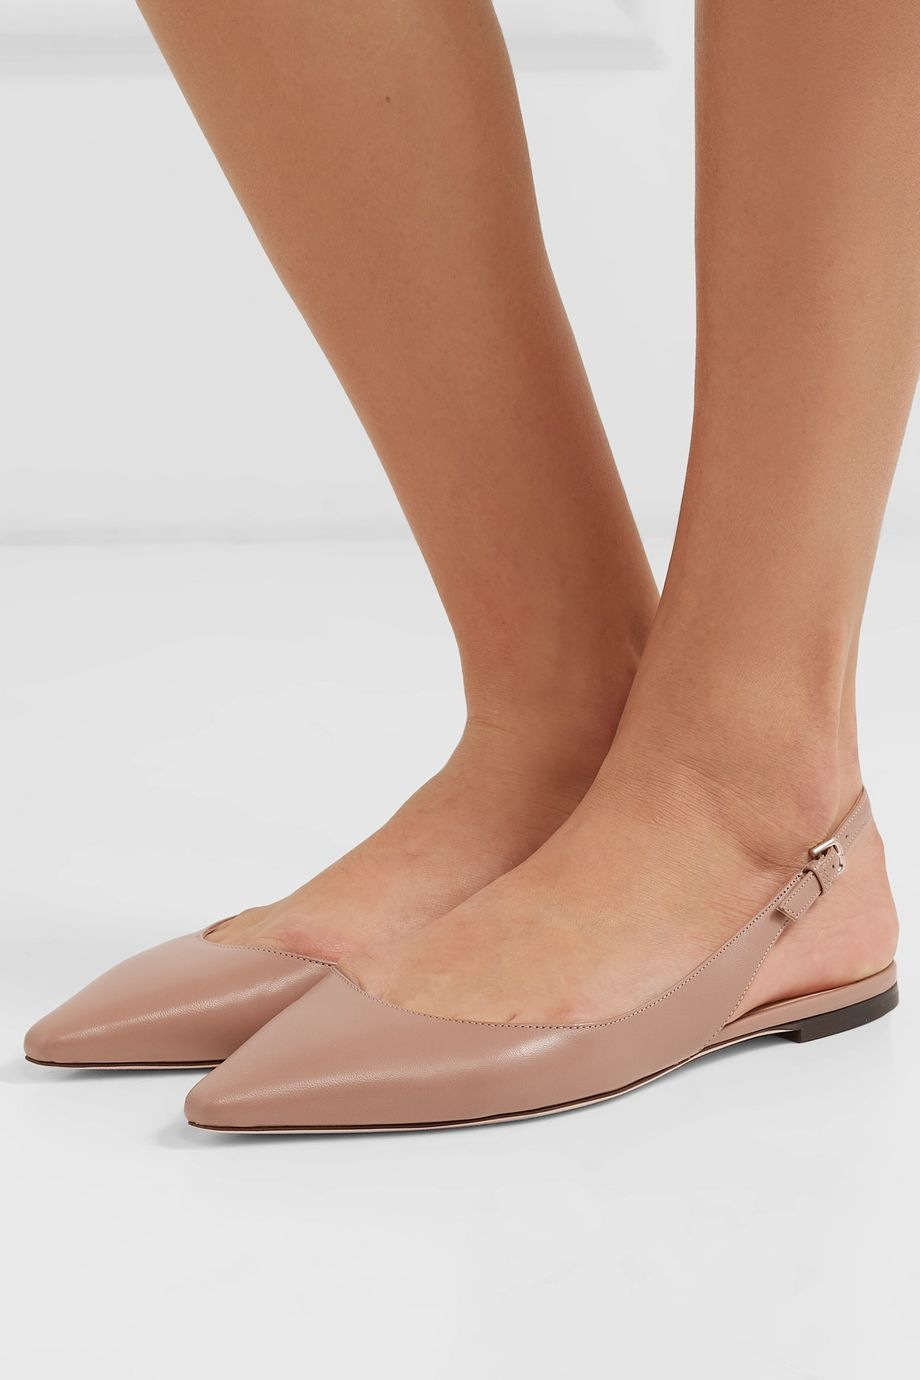 Jimmy Choo Erin leather slingback point-toe flats